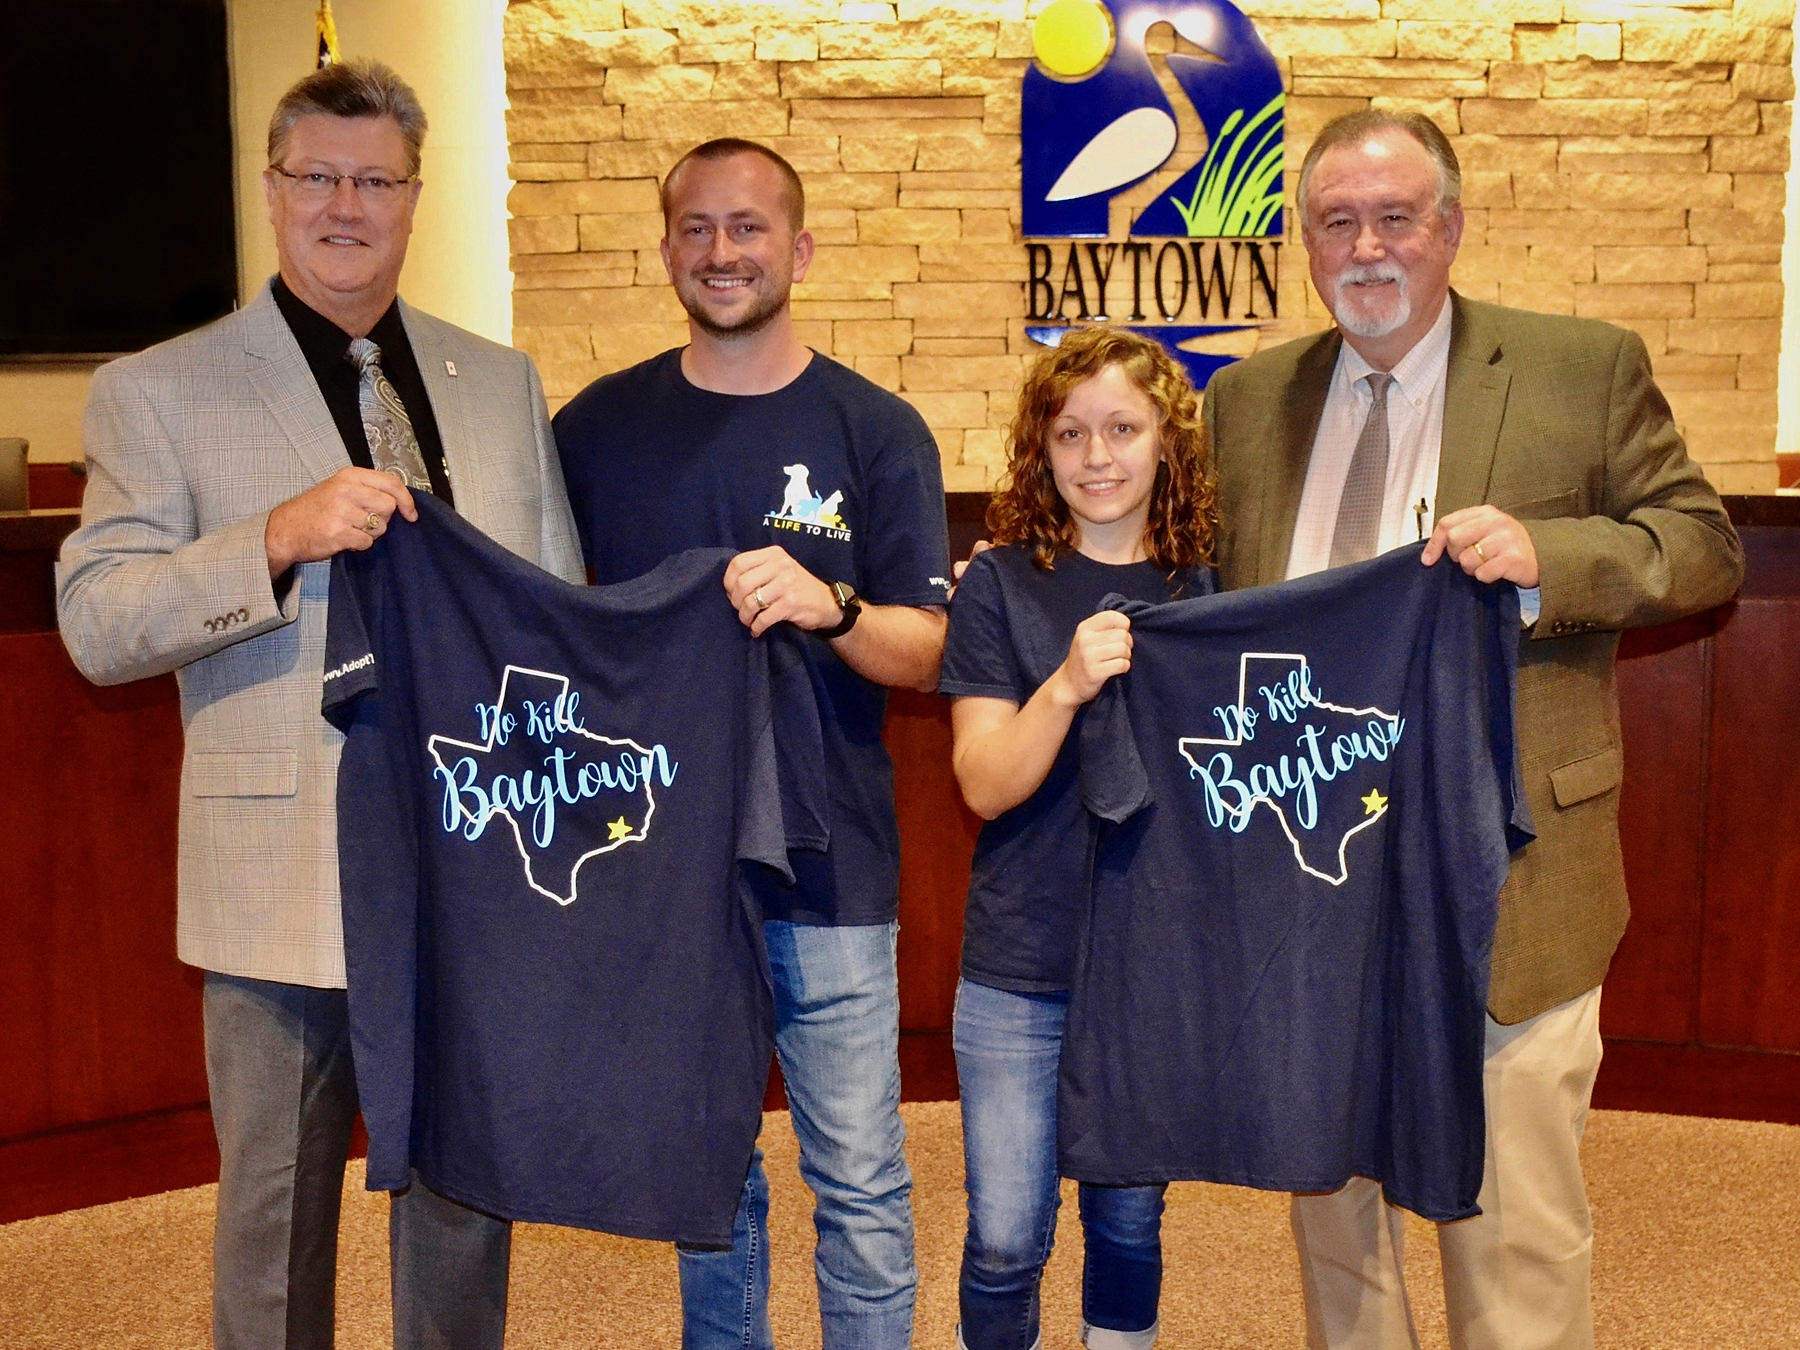 We recently presented No-Kill Baytown T-shirts to Baytown Mayor Stephen DonCarlos and City Council member Robert Hoskins. It recognizes their support for the council's passage of a resolution that commits the city to becoming no-kill by 2025. Since that occurred, A Life to Live has been hard at work on next steps to achieve no-kill status.